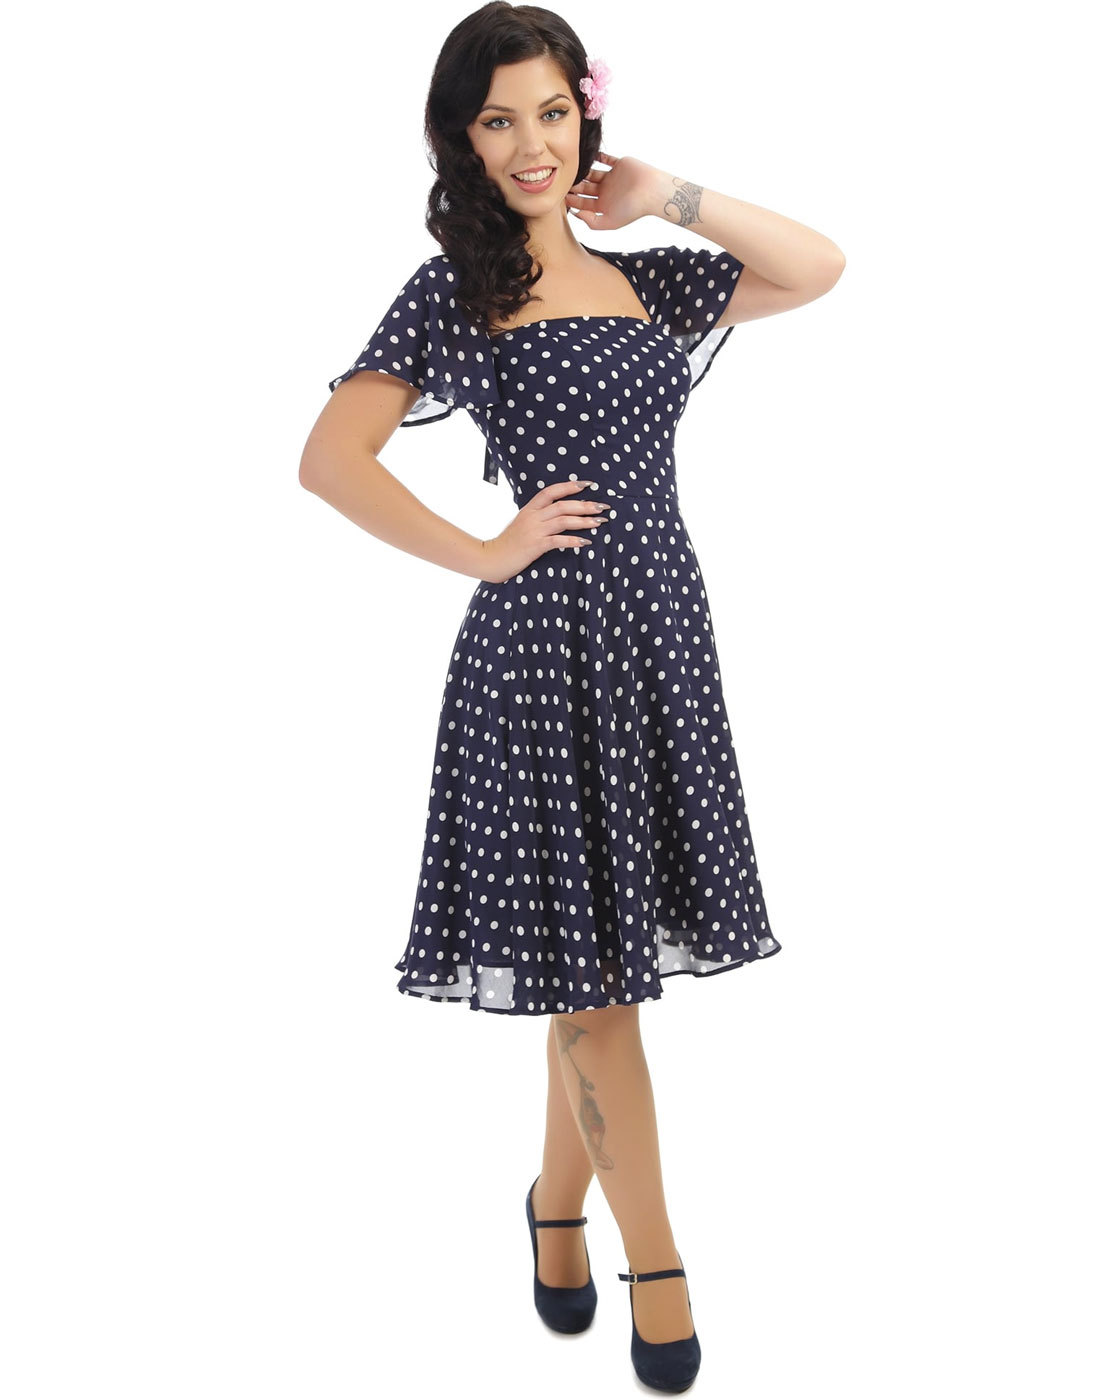 Juliet COLLECTIF VINTAGE 50s Polka Dot Swing Dress